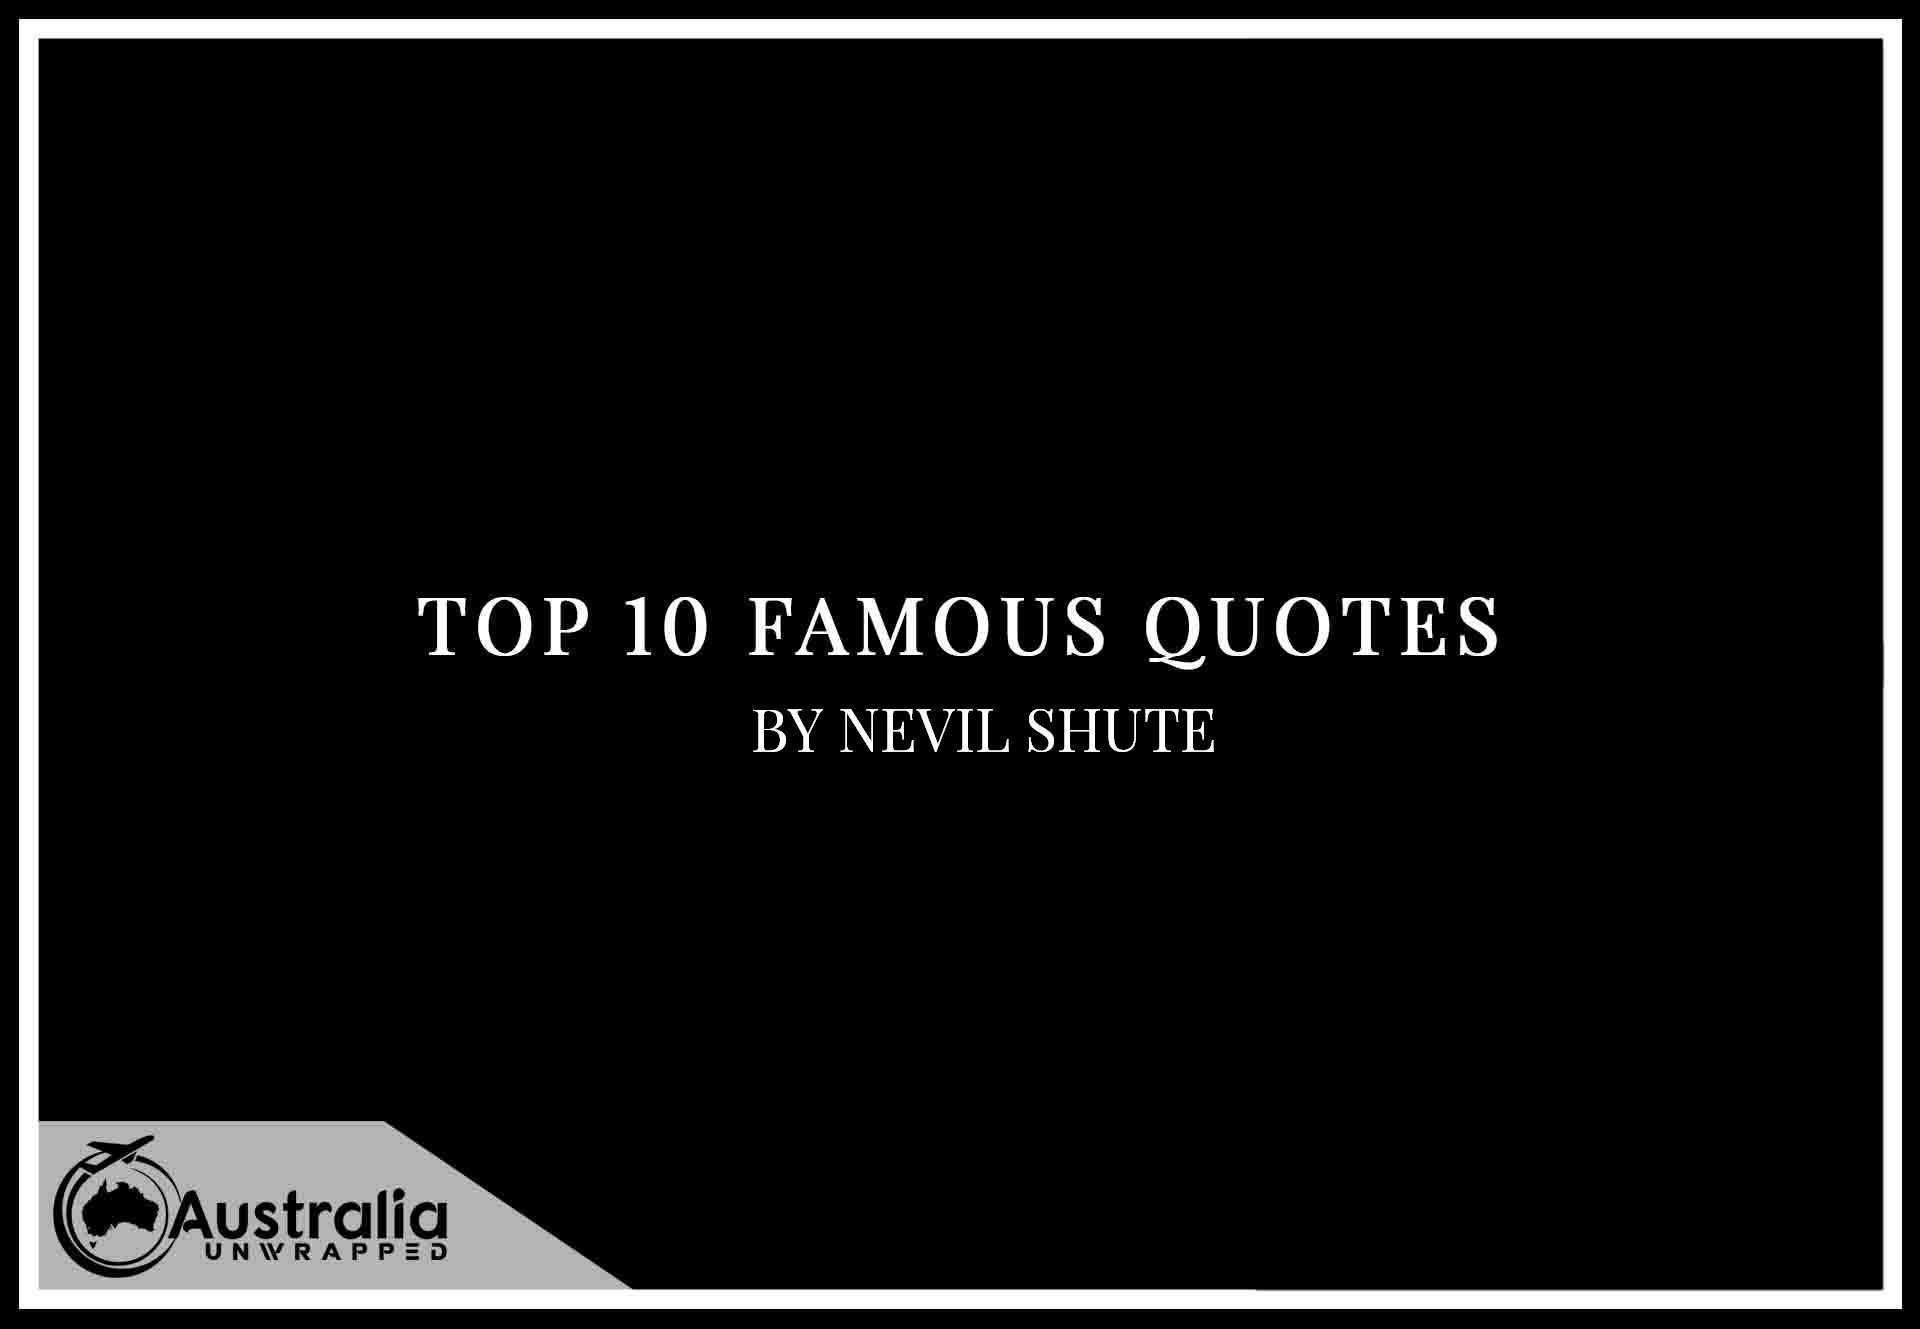 Top 10 Famous Quotes by Author Nevil Shute